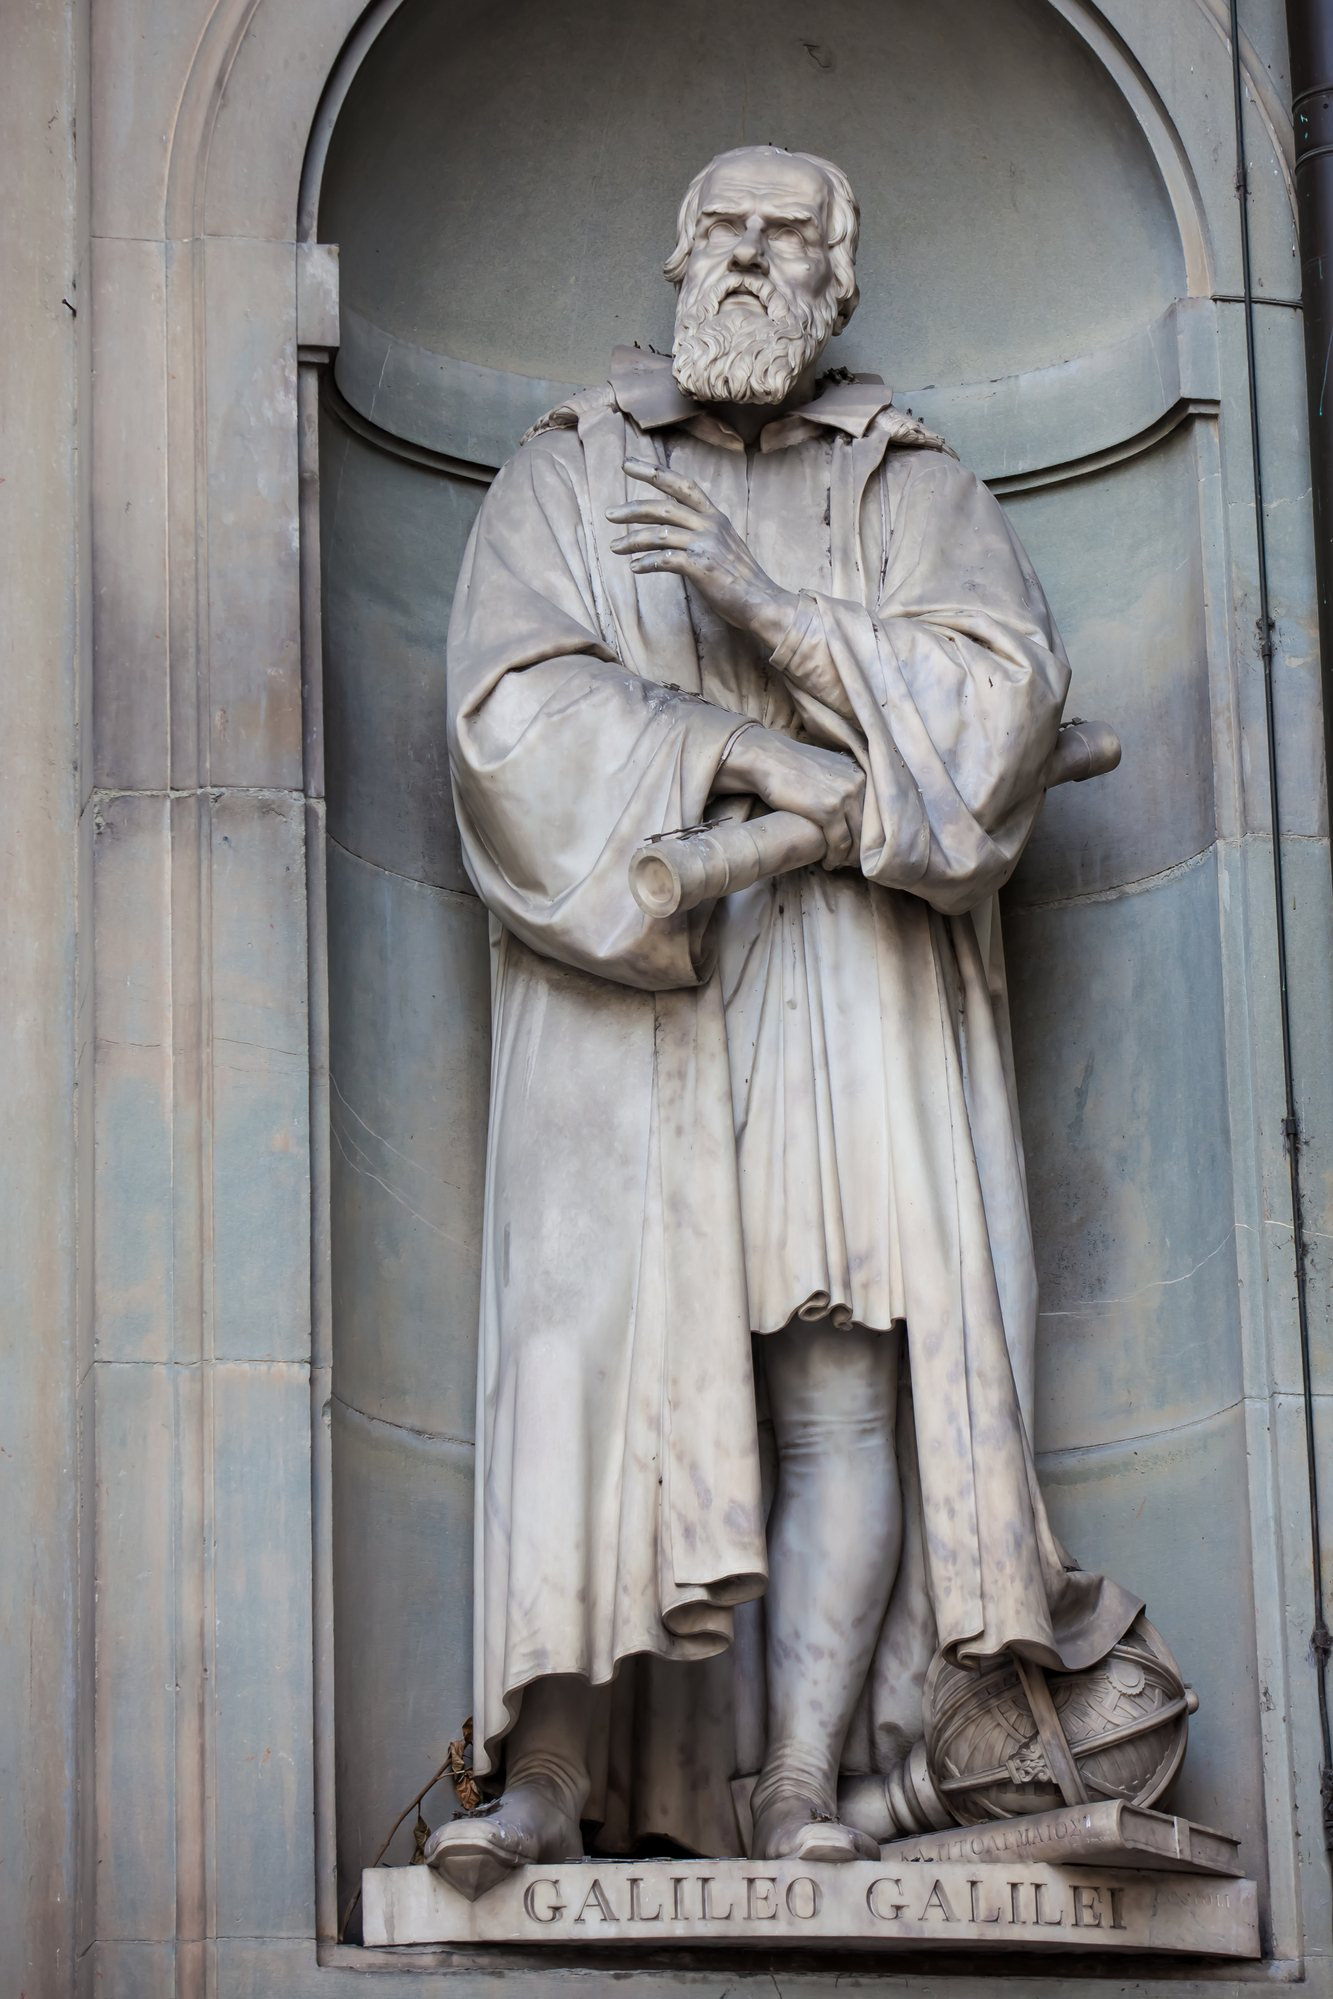 Statue of Galileo Galilei at the courtyard of the Uffizi Gallery in nearby Florence